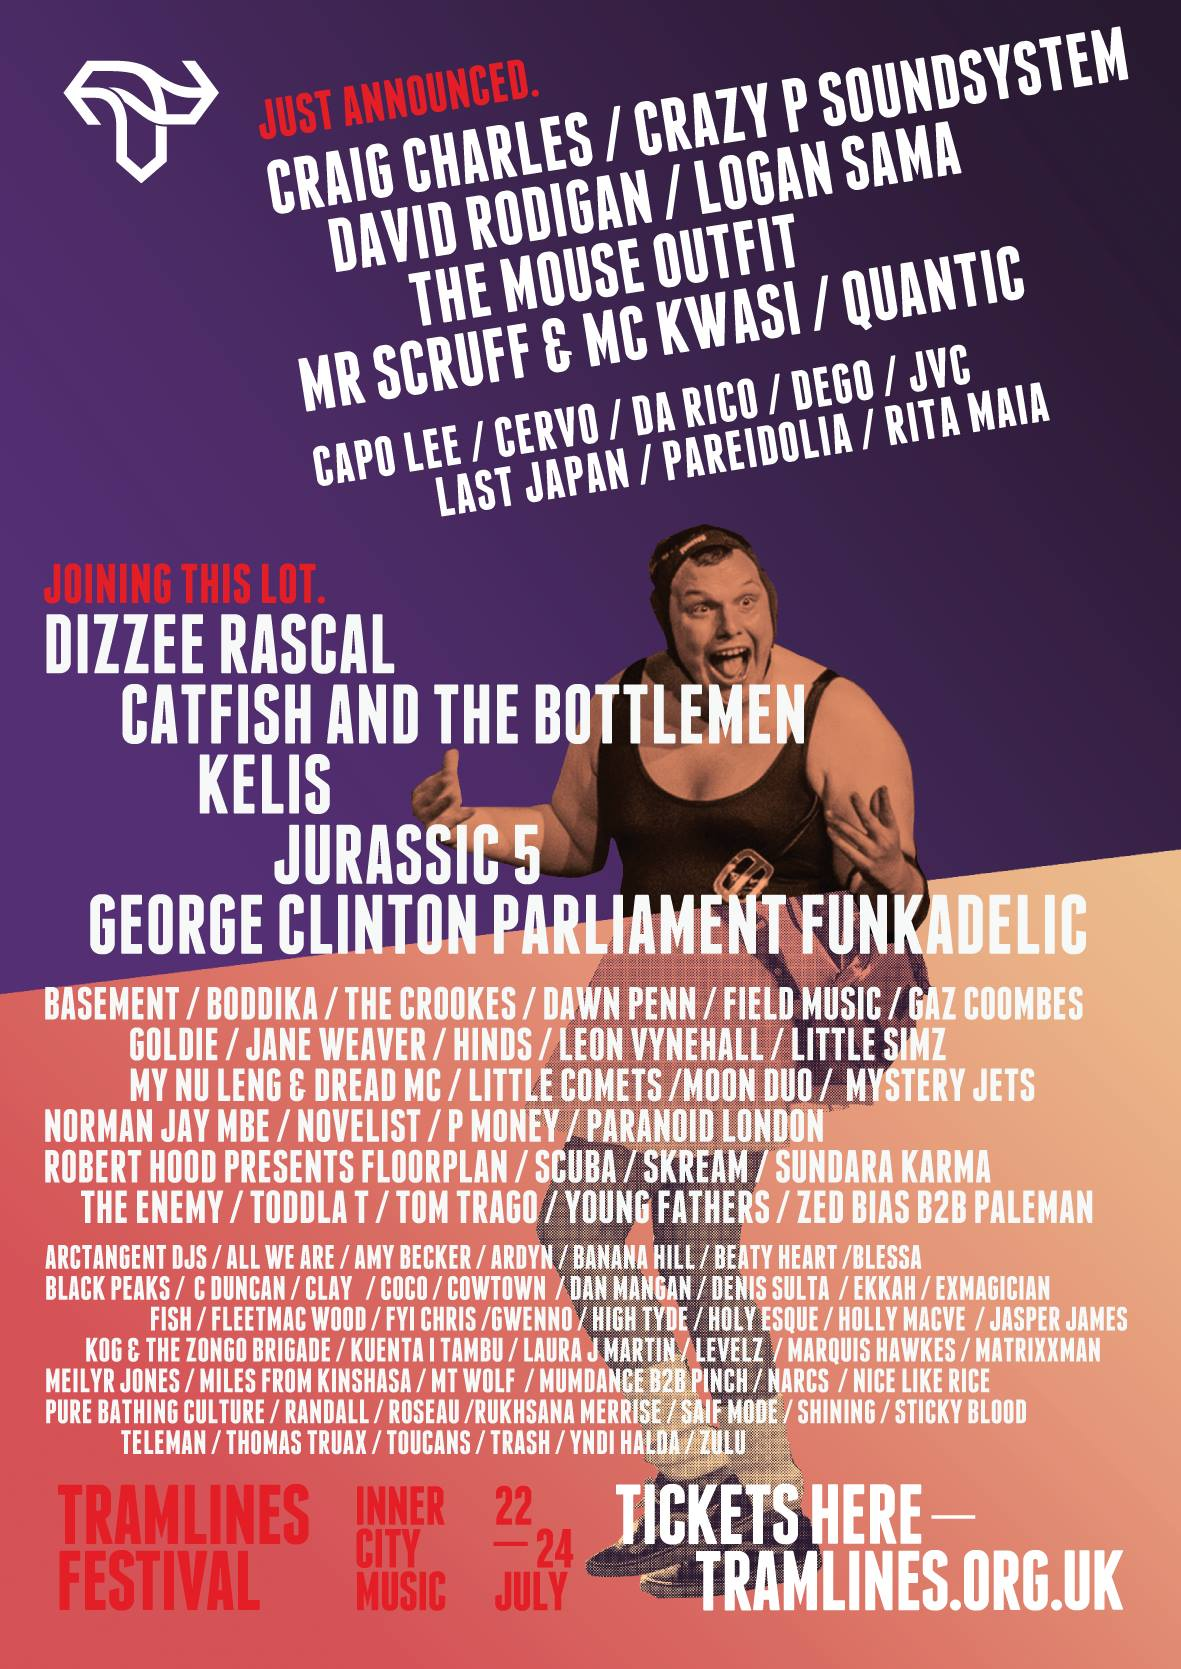 tramlines april 12 update